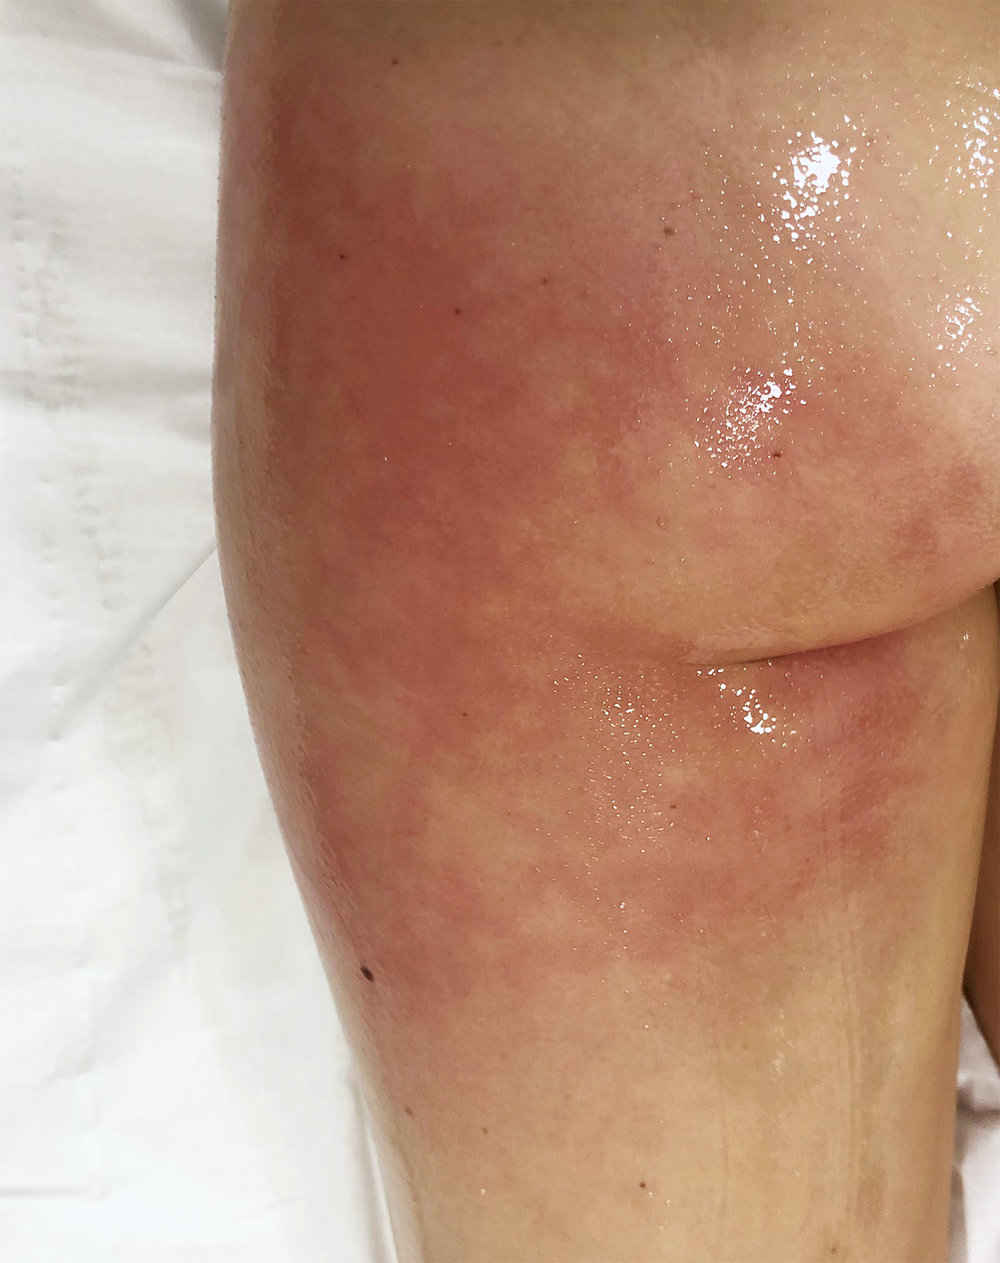 Cellulite: poor circulation and lymphatic drainage vs fat accumulation on the skin